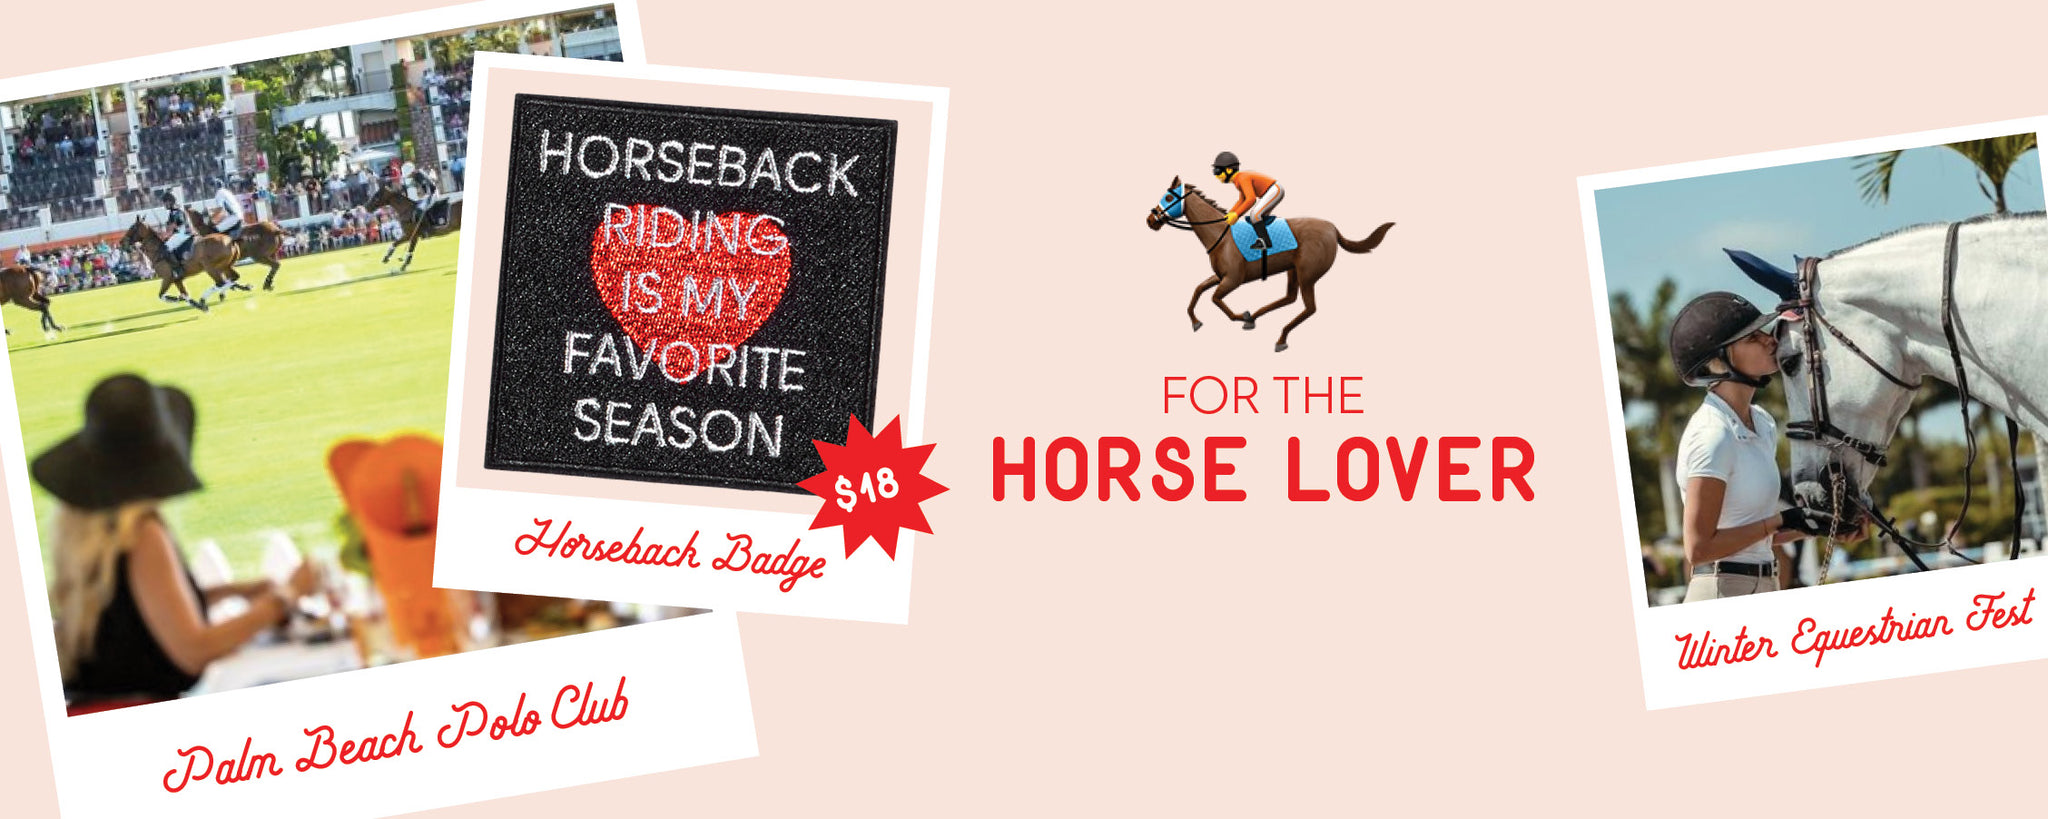 For the Horse Lover